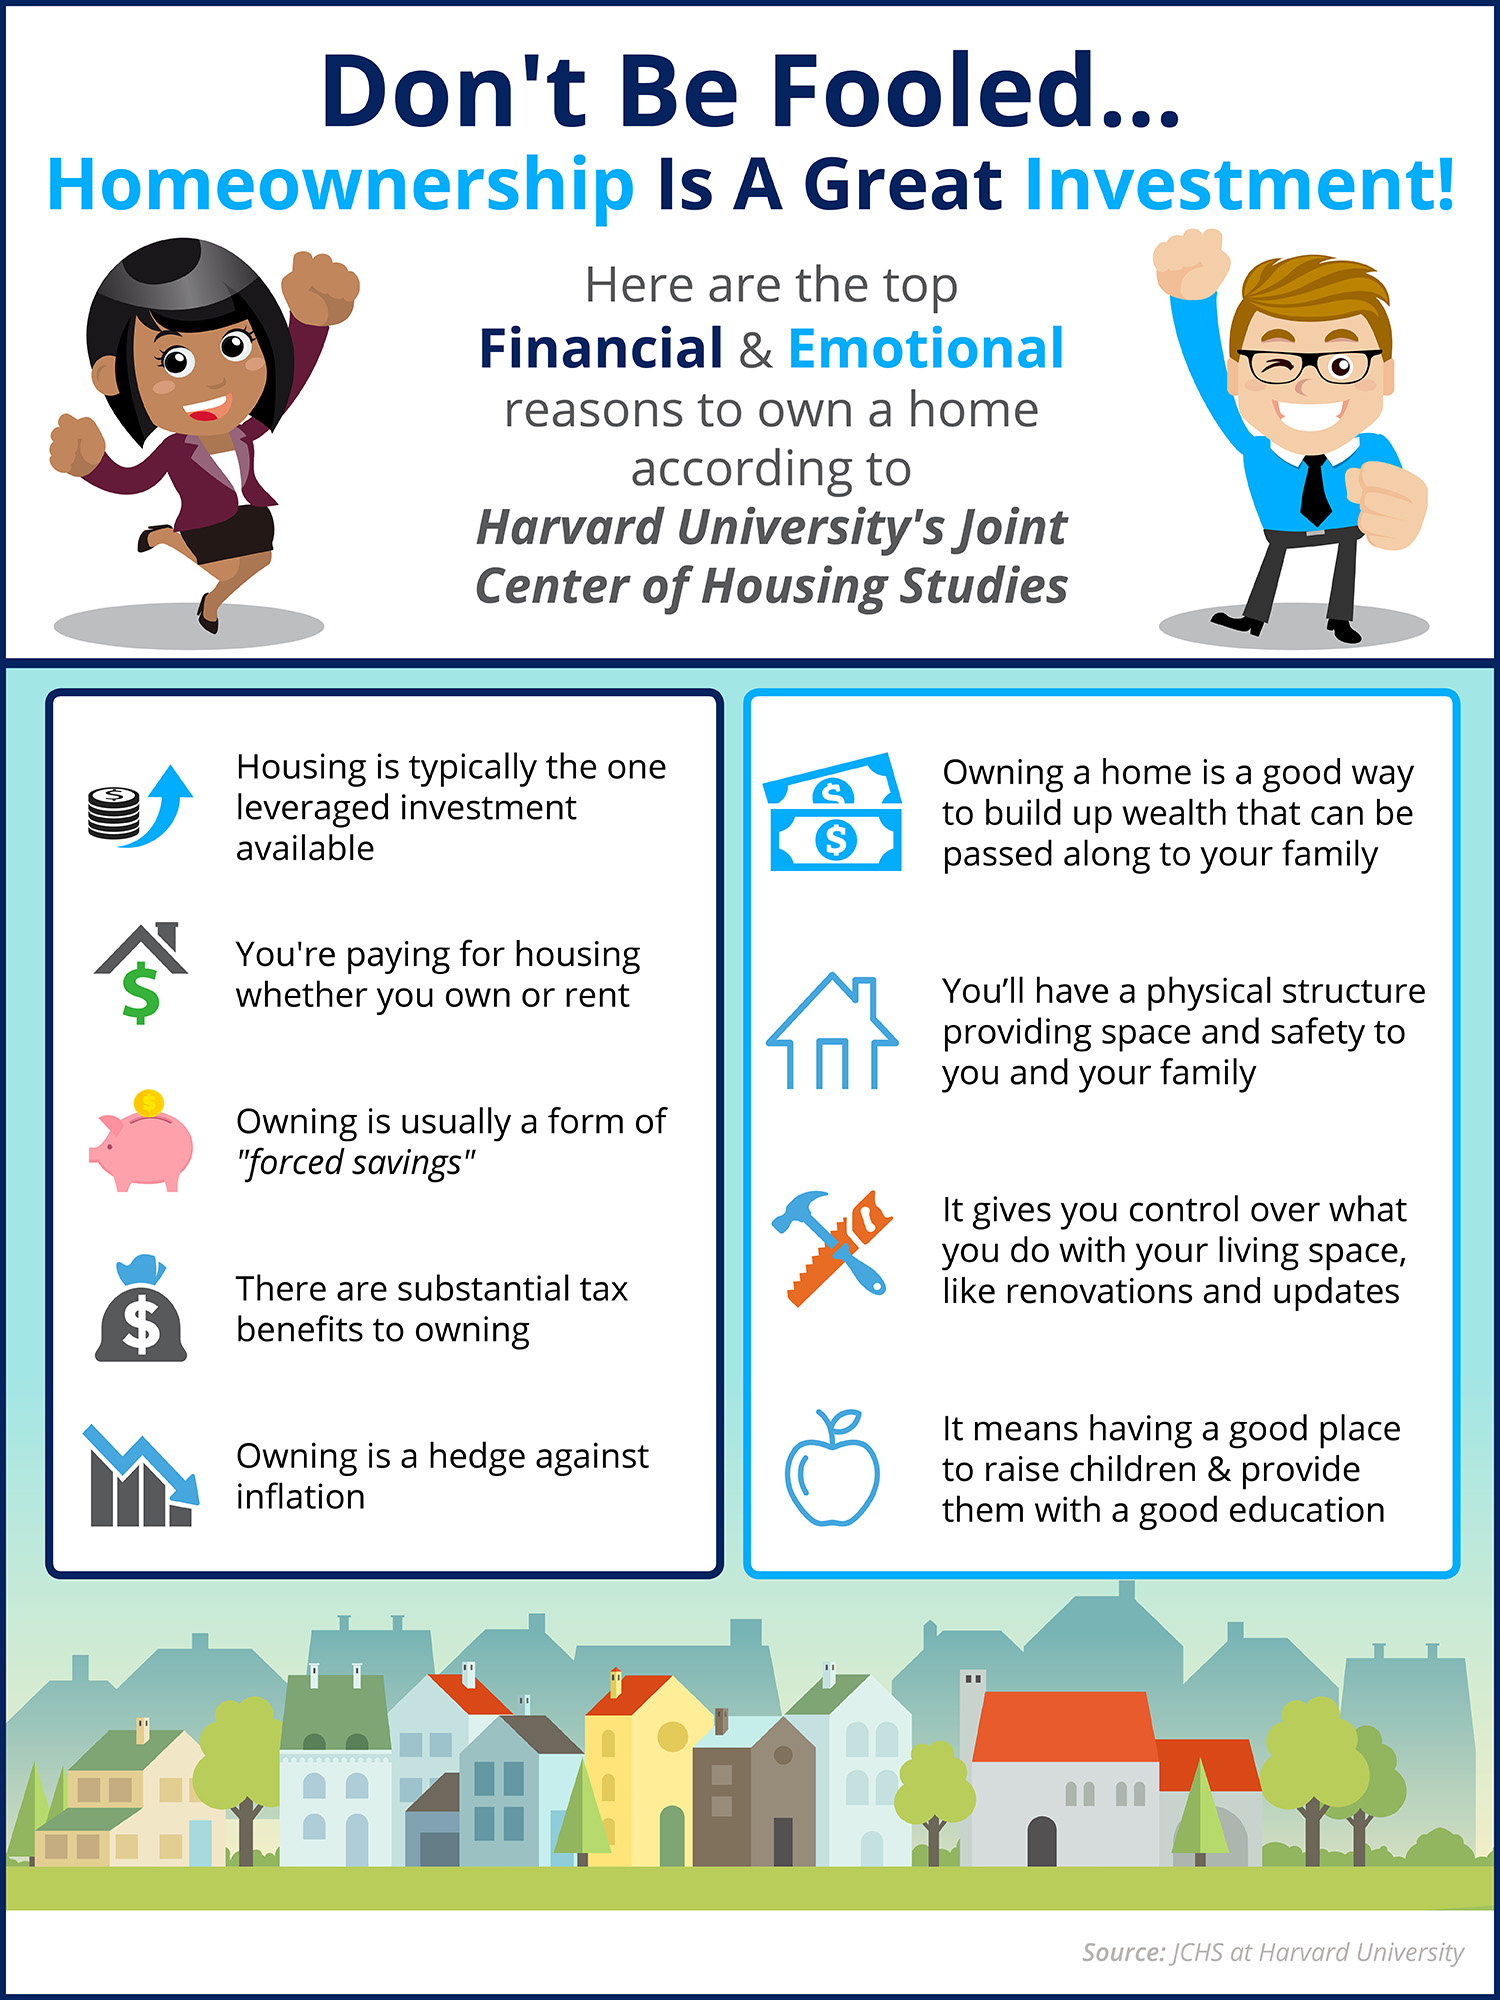 Don't Be Fooled... Homeownership Is A Great Investment! [INFOGRAPHIC] | Simplifying The Market